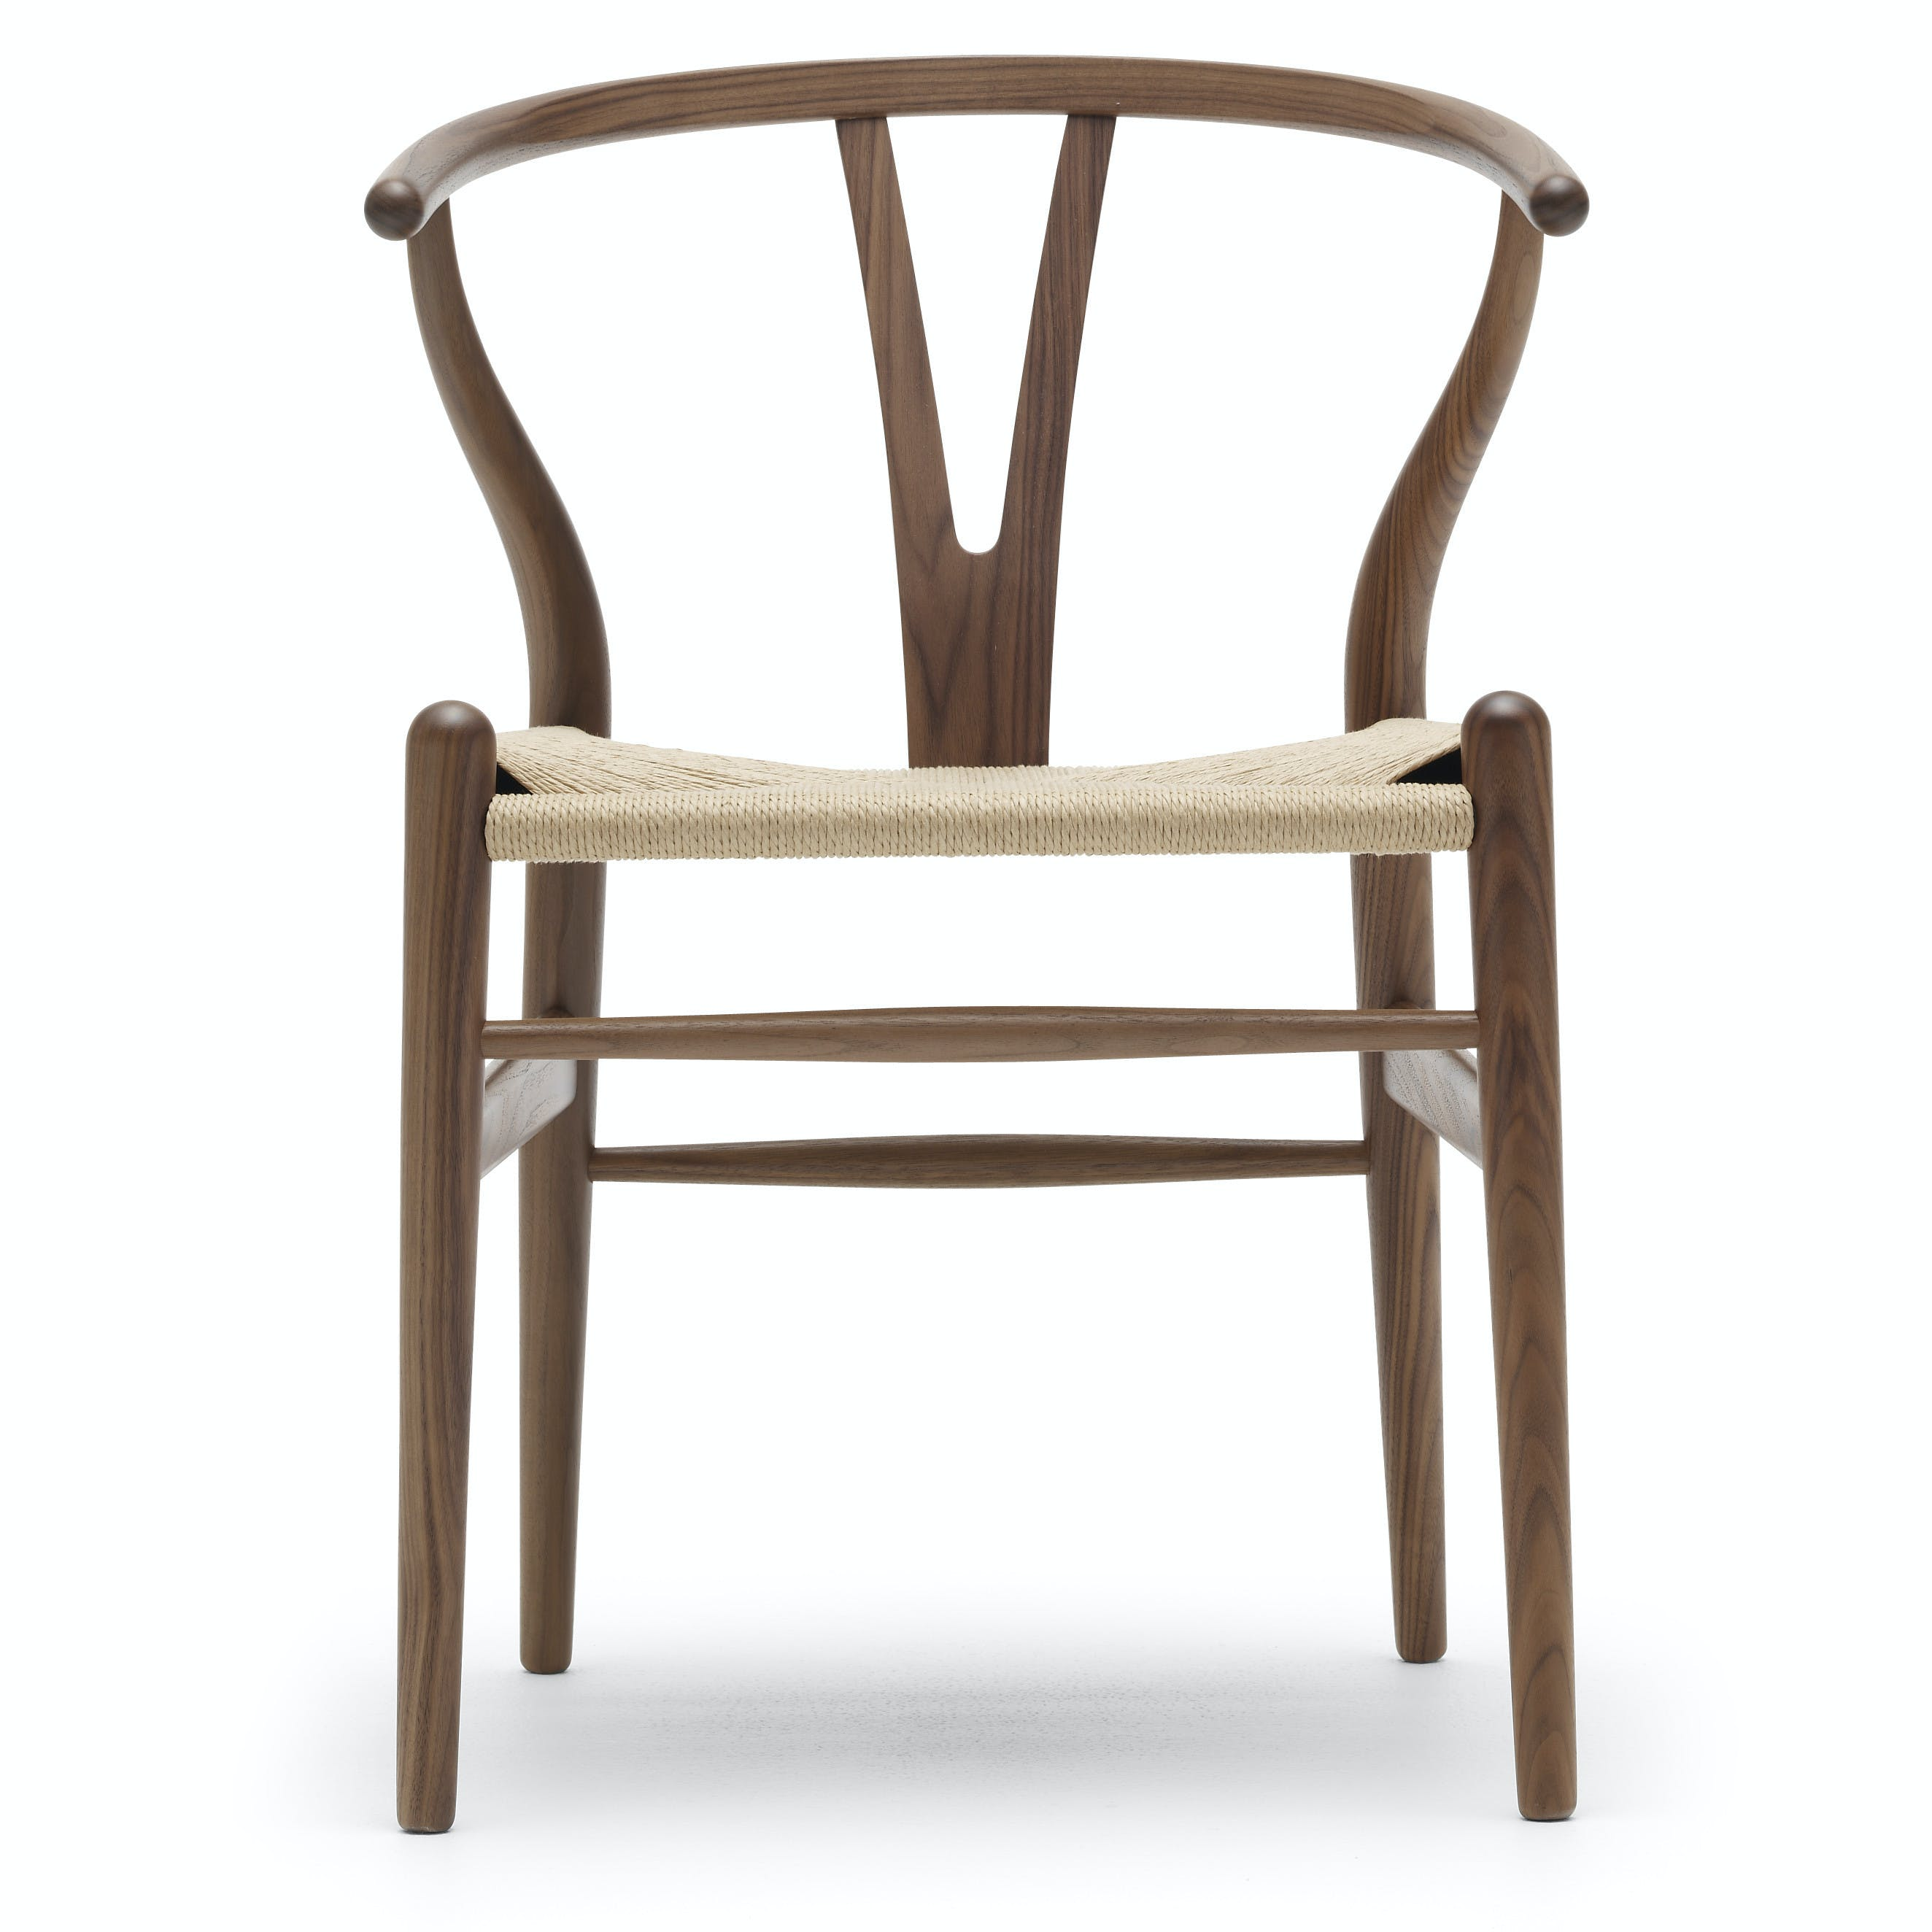 Carl-hansen-son-walnut-front-ch24-haute-living